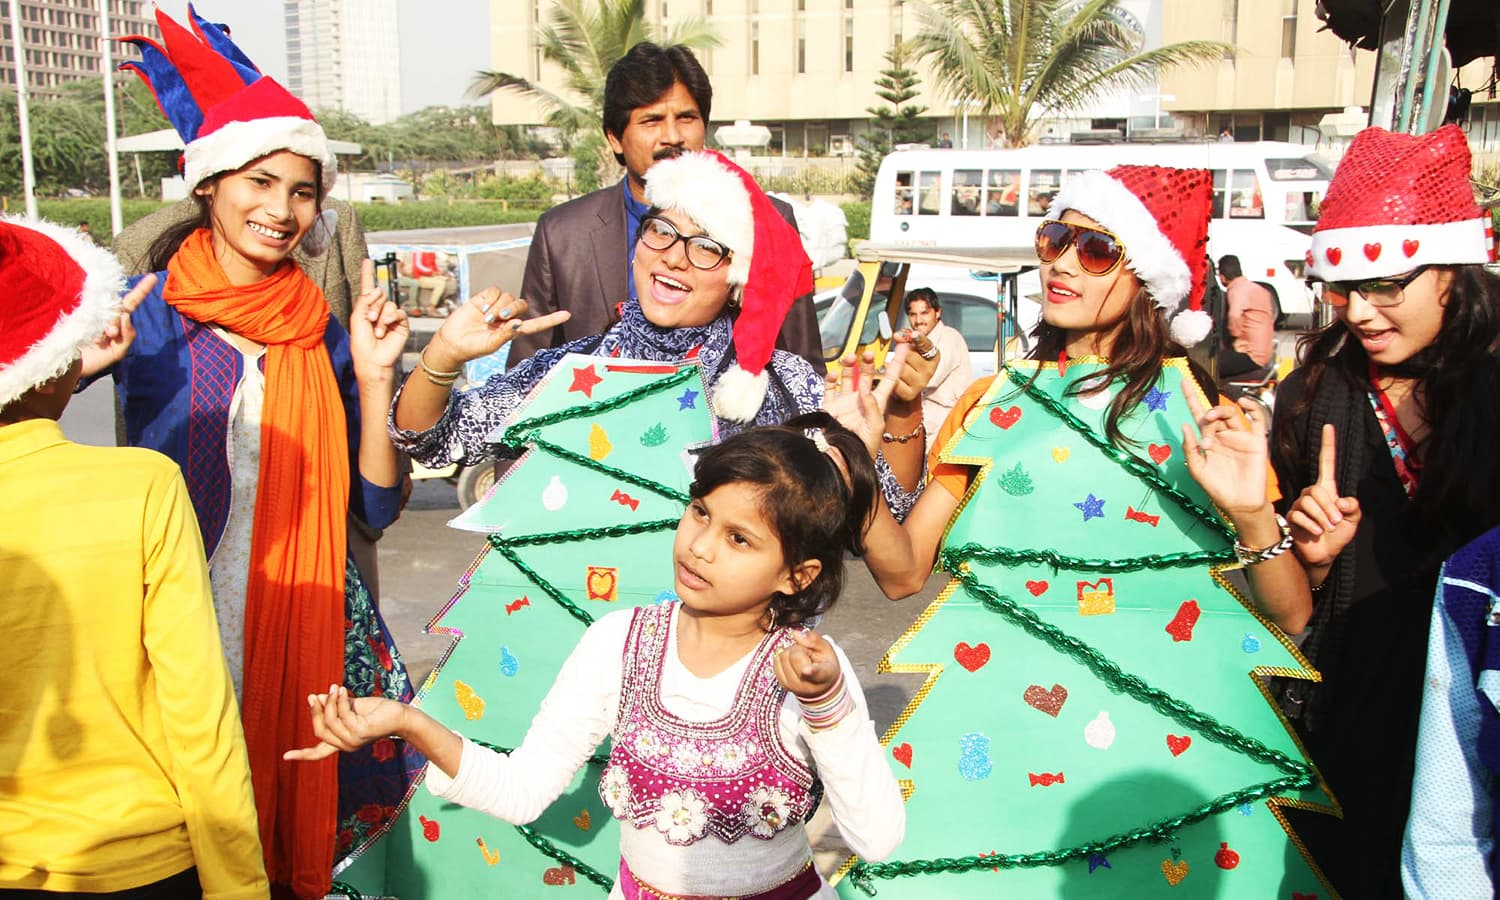 Women in Christmas tree costumes sing carols on the street during the rally.— PPI